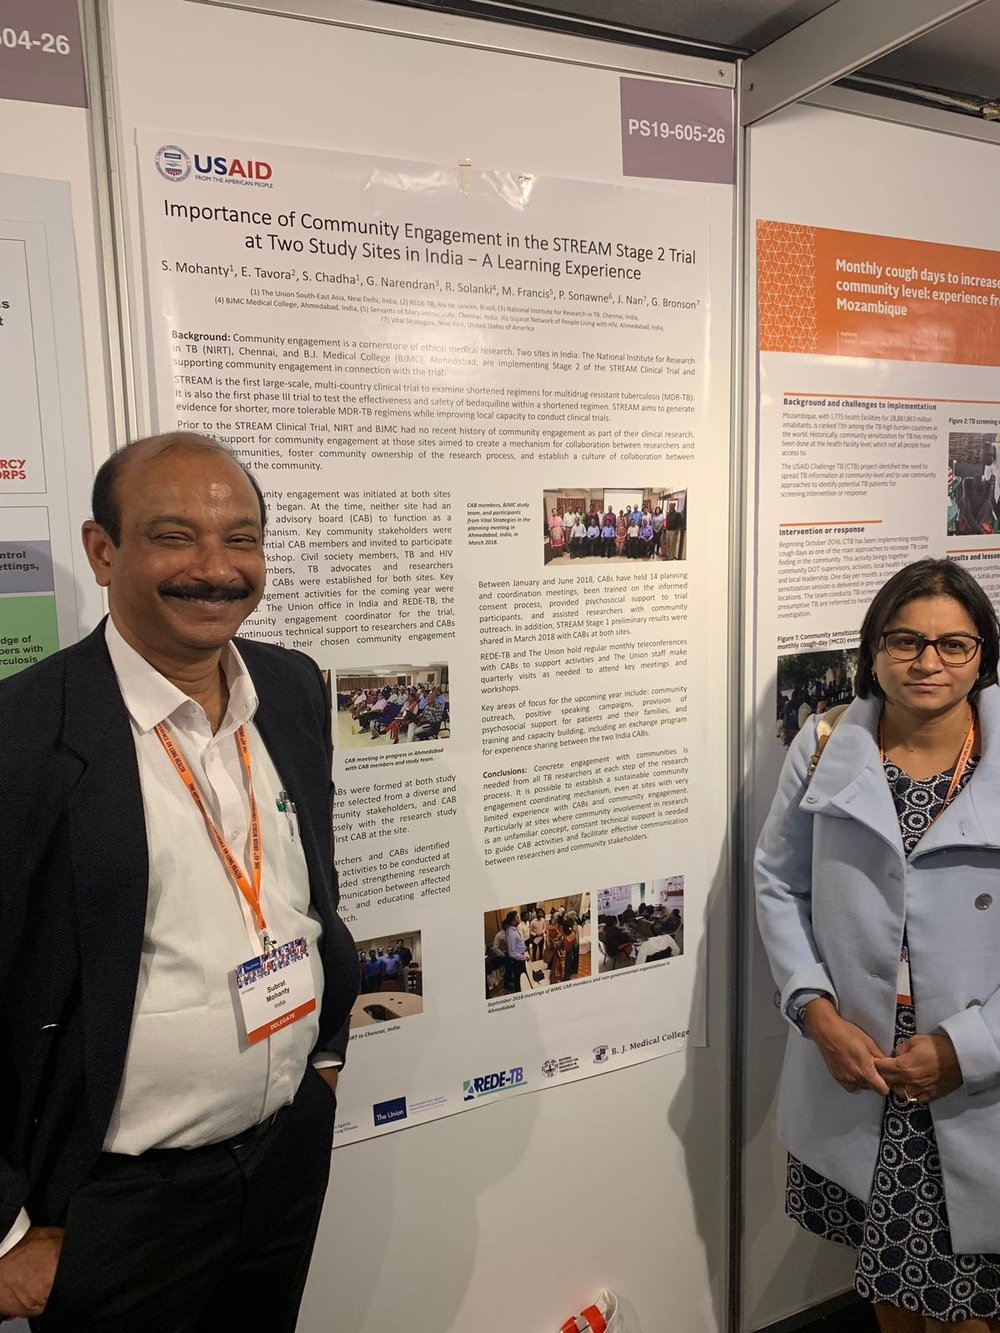 Subrat Mohanty and Purnima Jolly discuss STREAM Community Engagement at this year's World Conference on Lung Health.